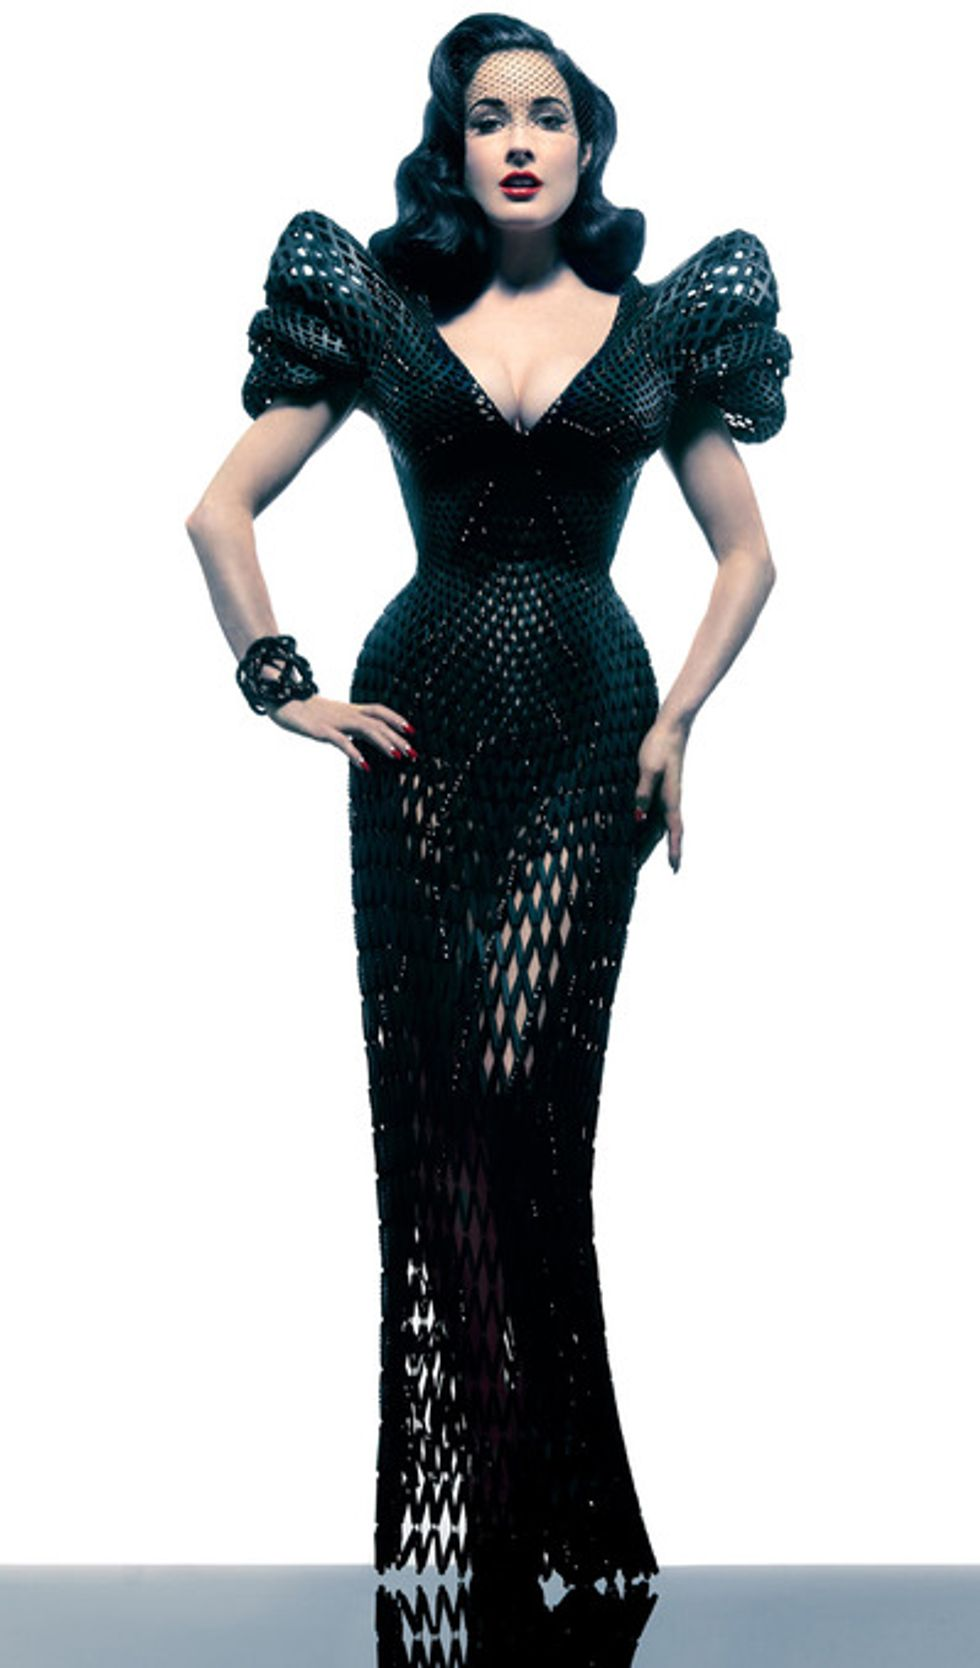 Designer Michael Schmidt On the World's First Fully Articulated 3D Printed Dress